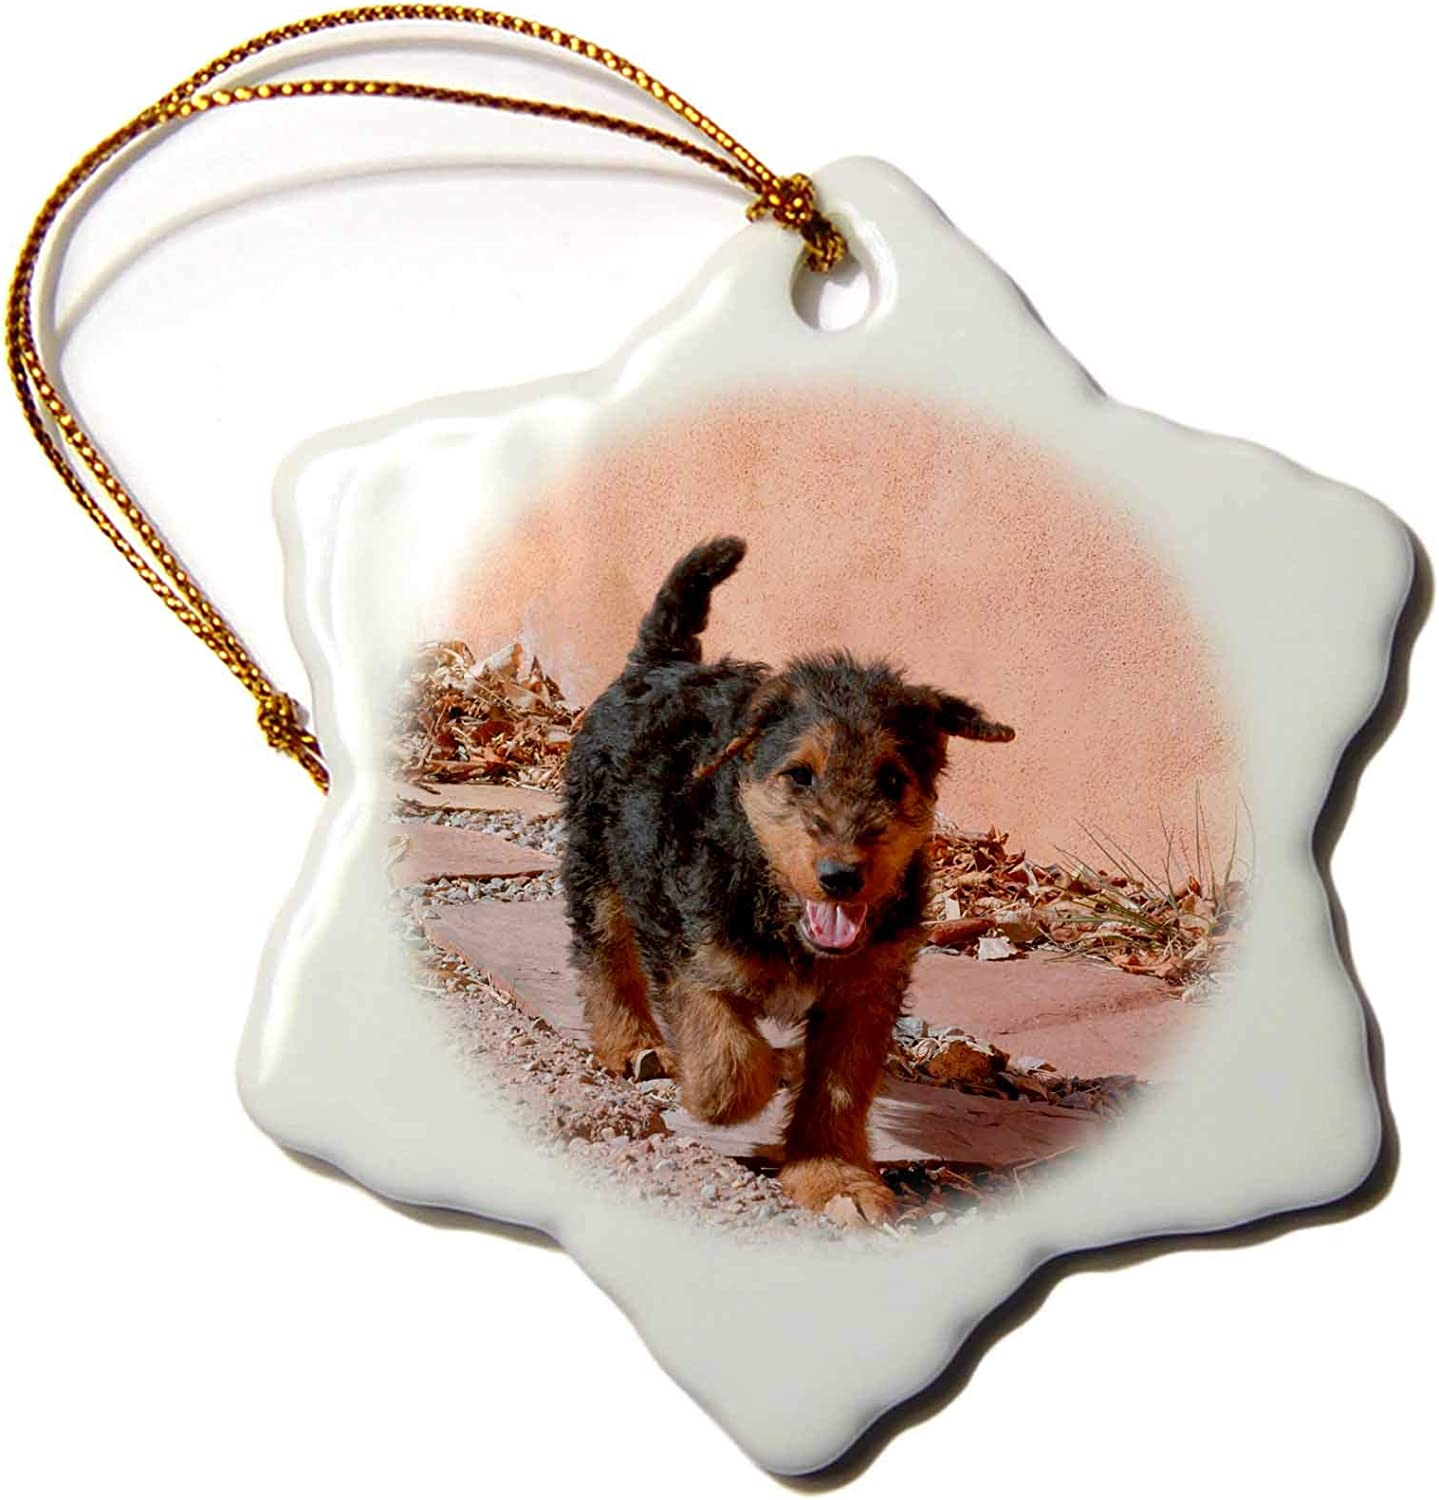 3dRose Danita Delimont - Dogs - Airedale Puppy Walking on Garden Path - Ornaments (ORN_230292_1)